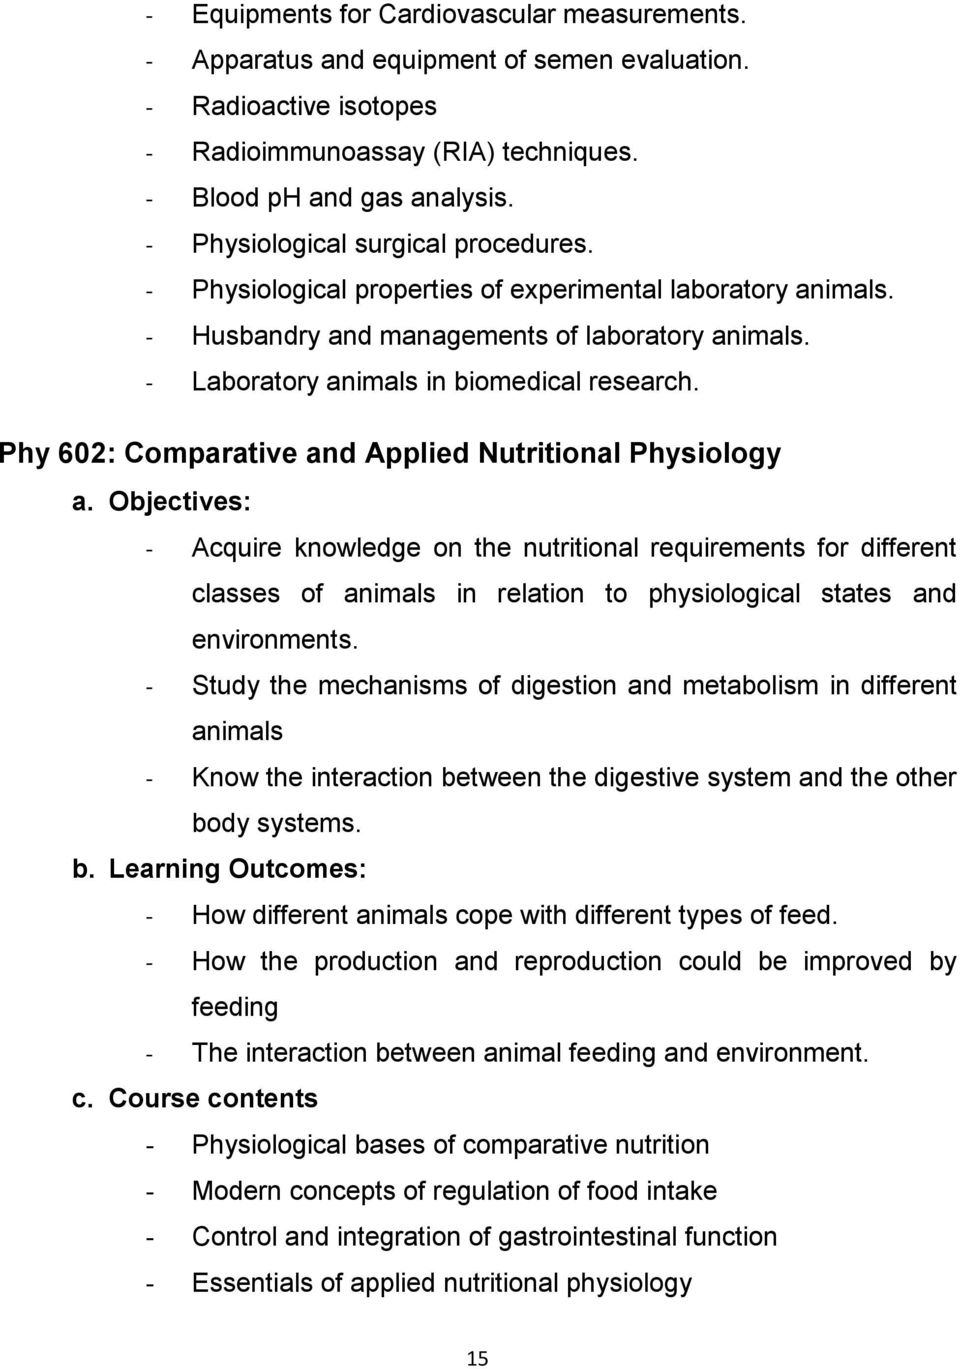 Phy 602: Comparative and Applied Nutritional Physiology - Acquire knowledge on the nutritional requirements for different classes of animals in relation to physiological states and environments.